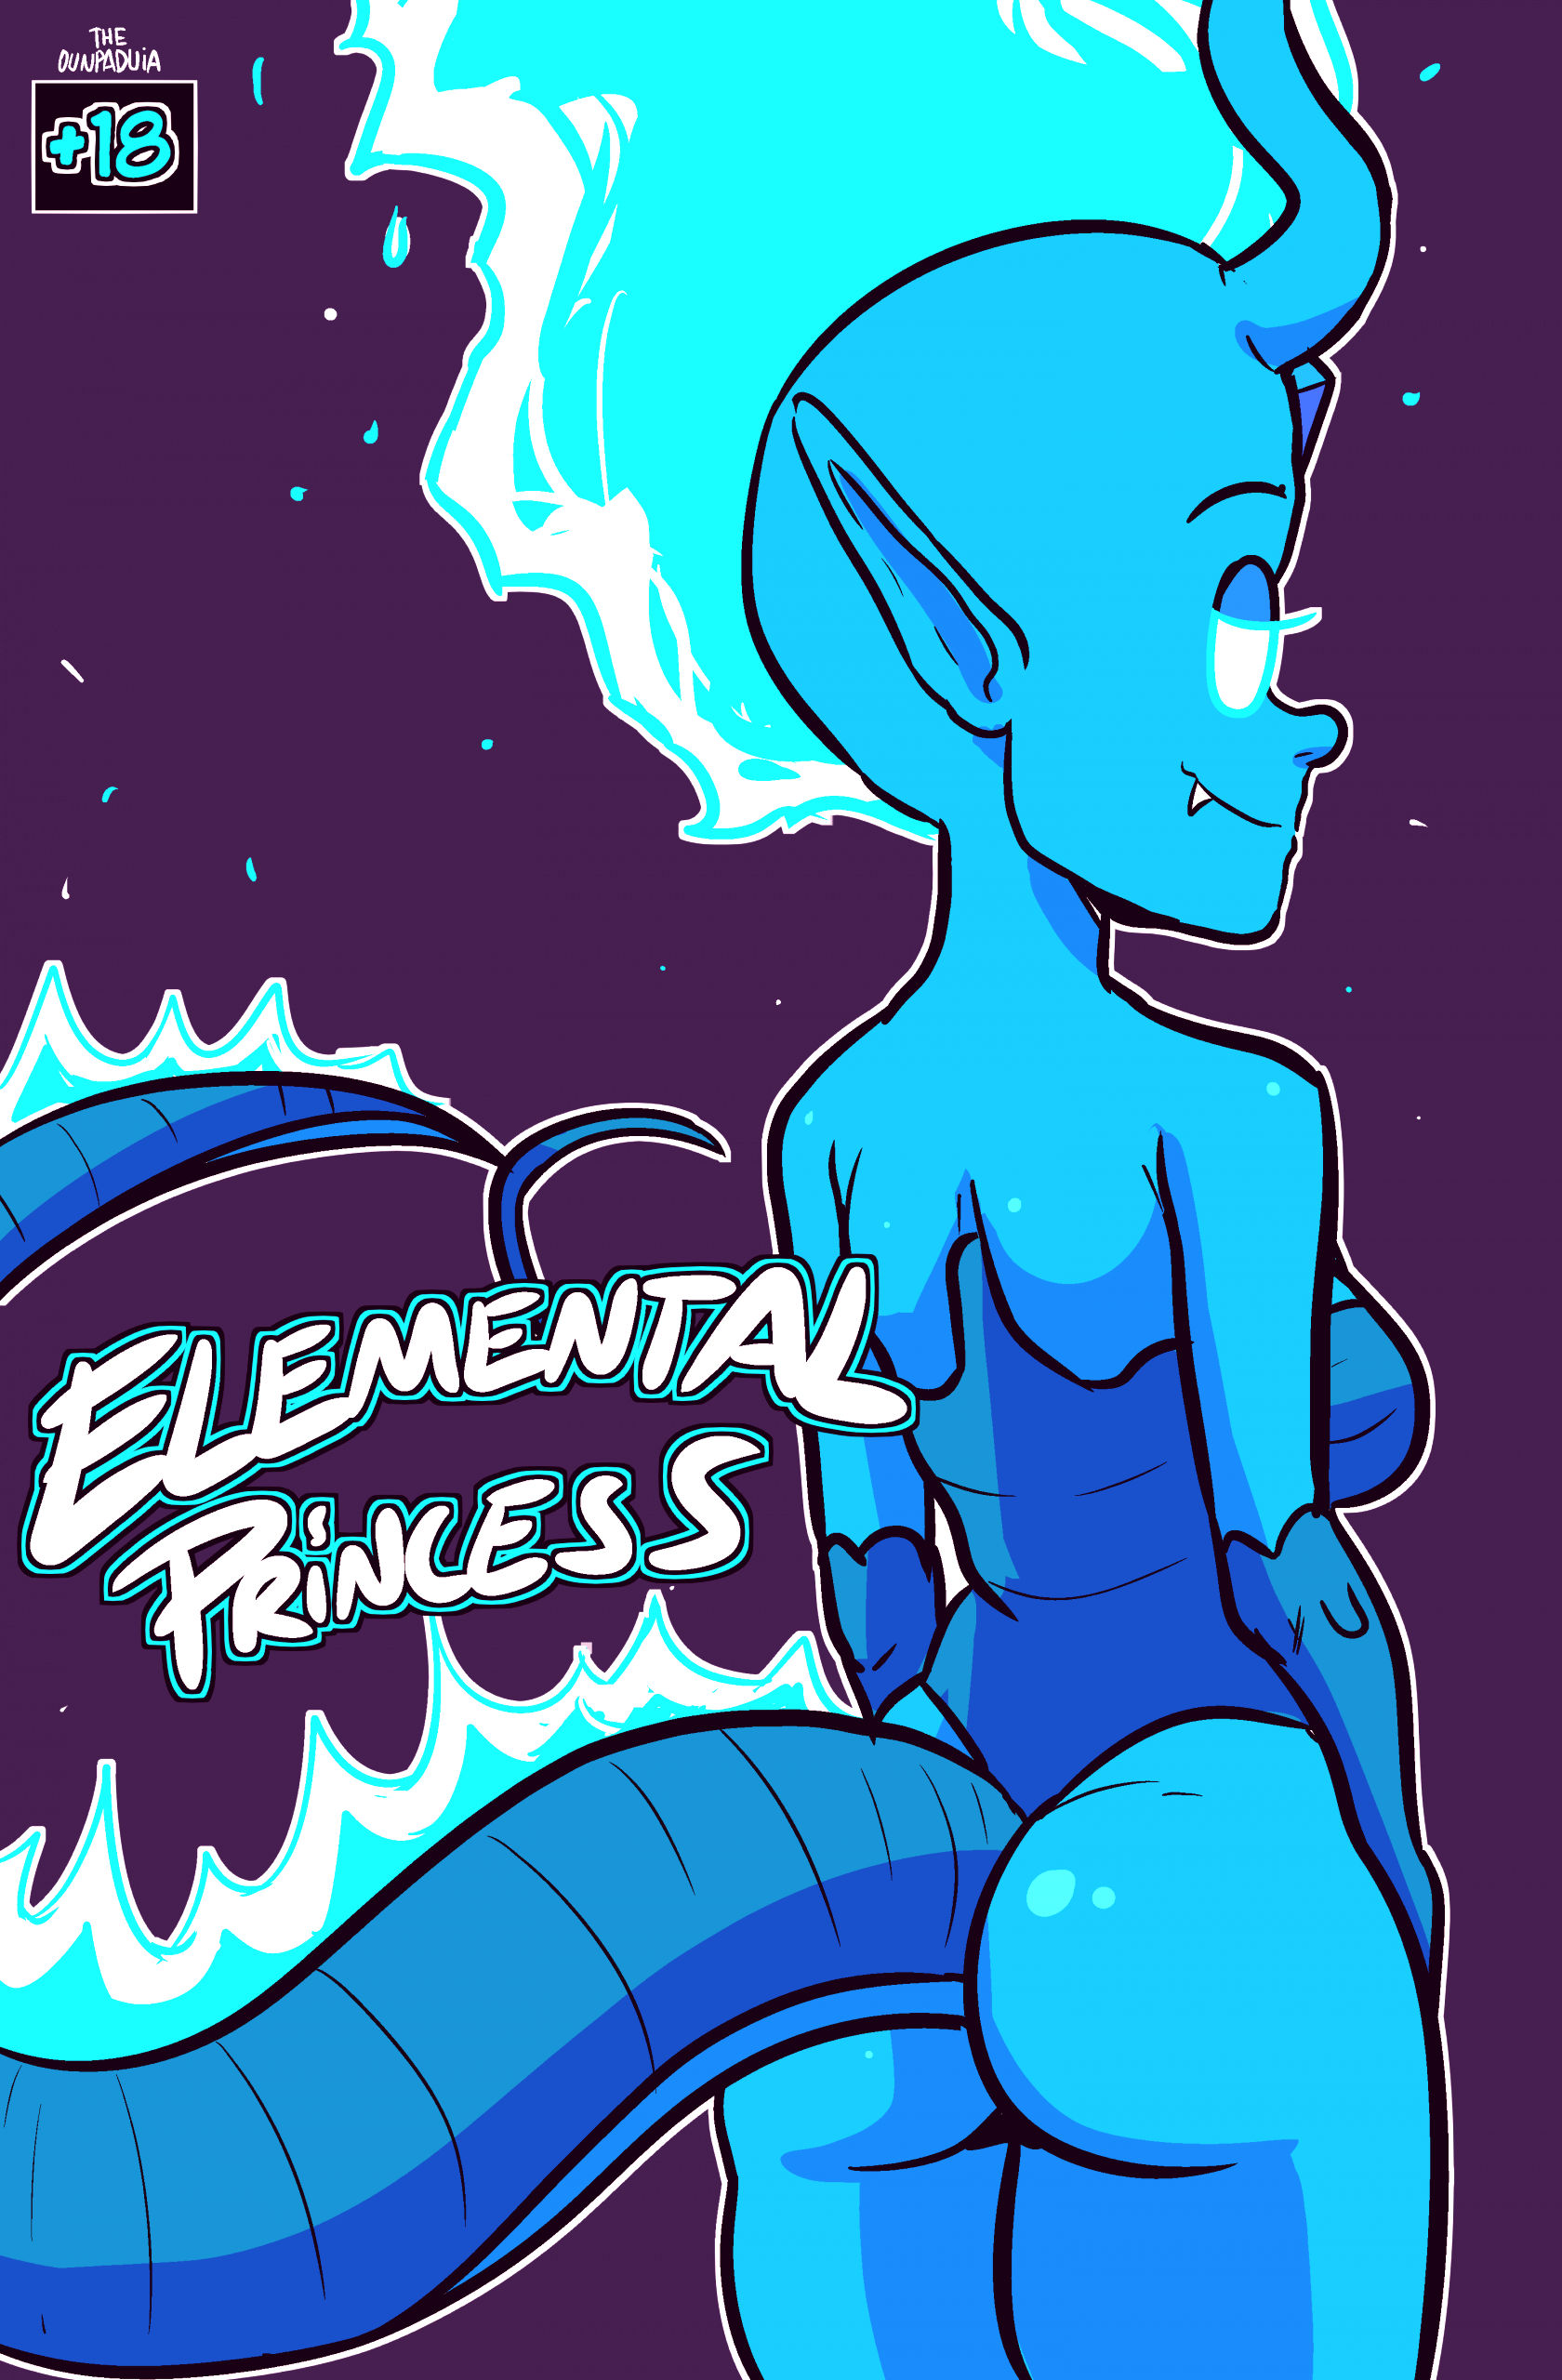 Elemental princess porn comic picture 1